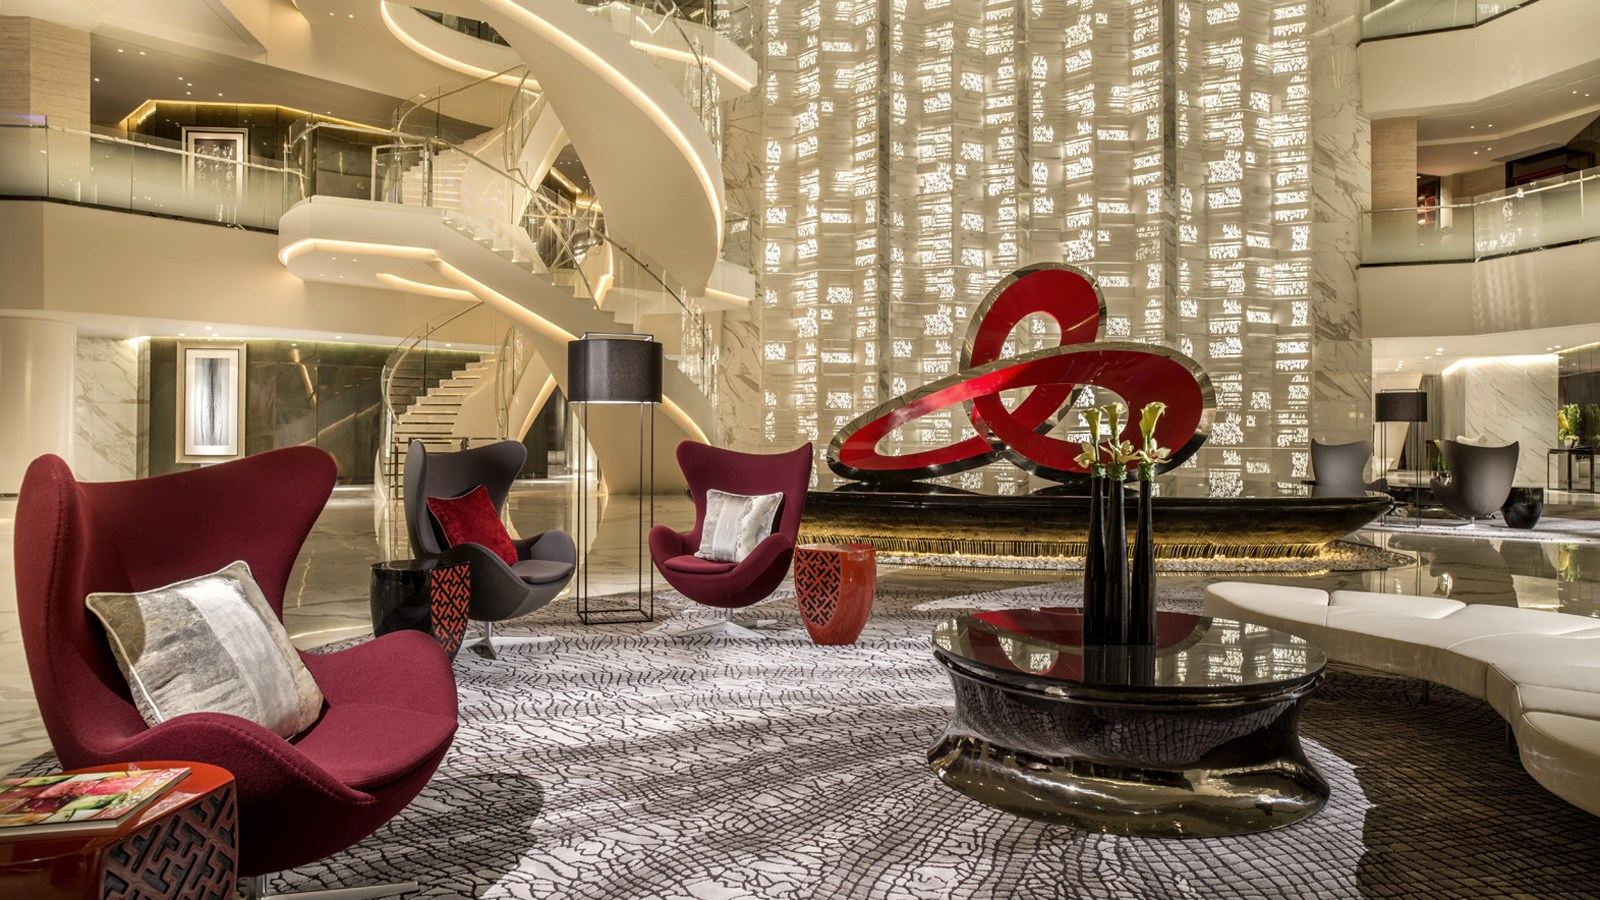 Four Seasons Hotel In Guangzhou Has An Impressive Interior Design And All The Details Of Ideas Is Amazing Experience To